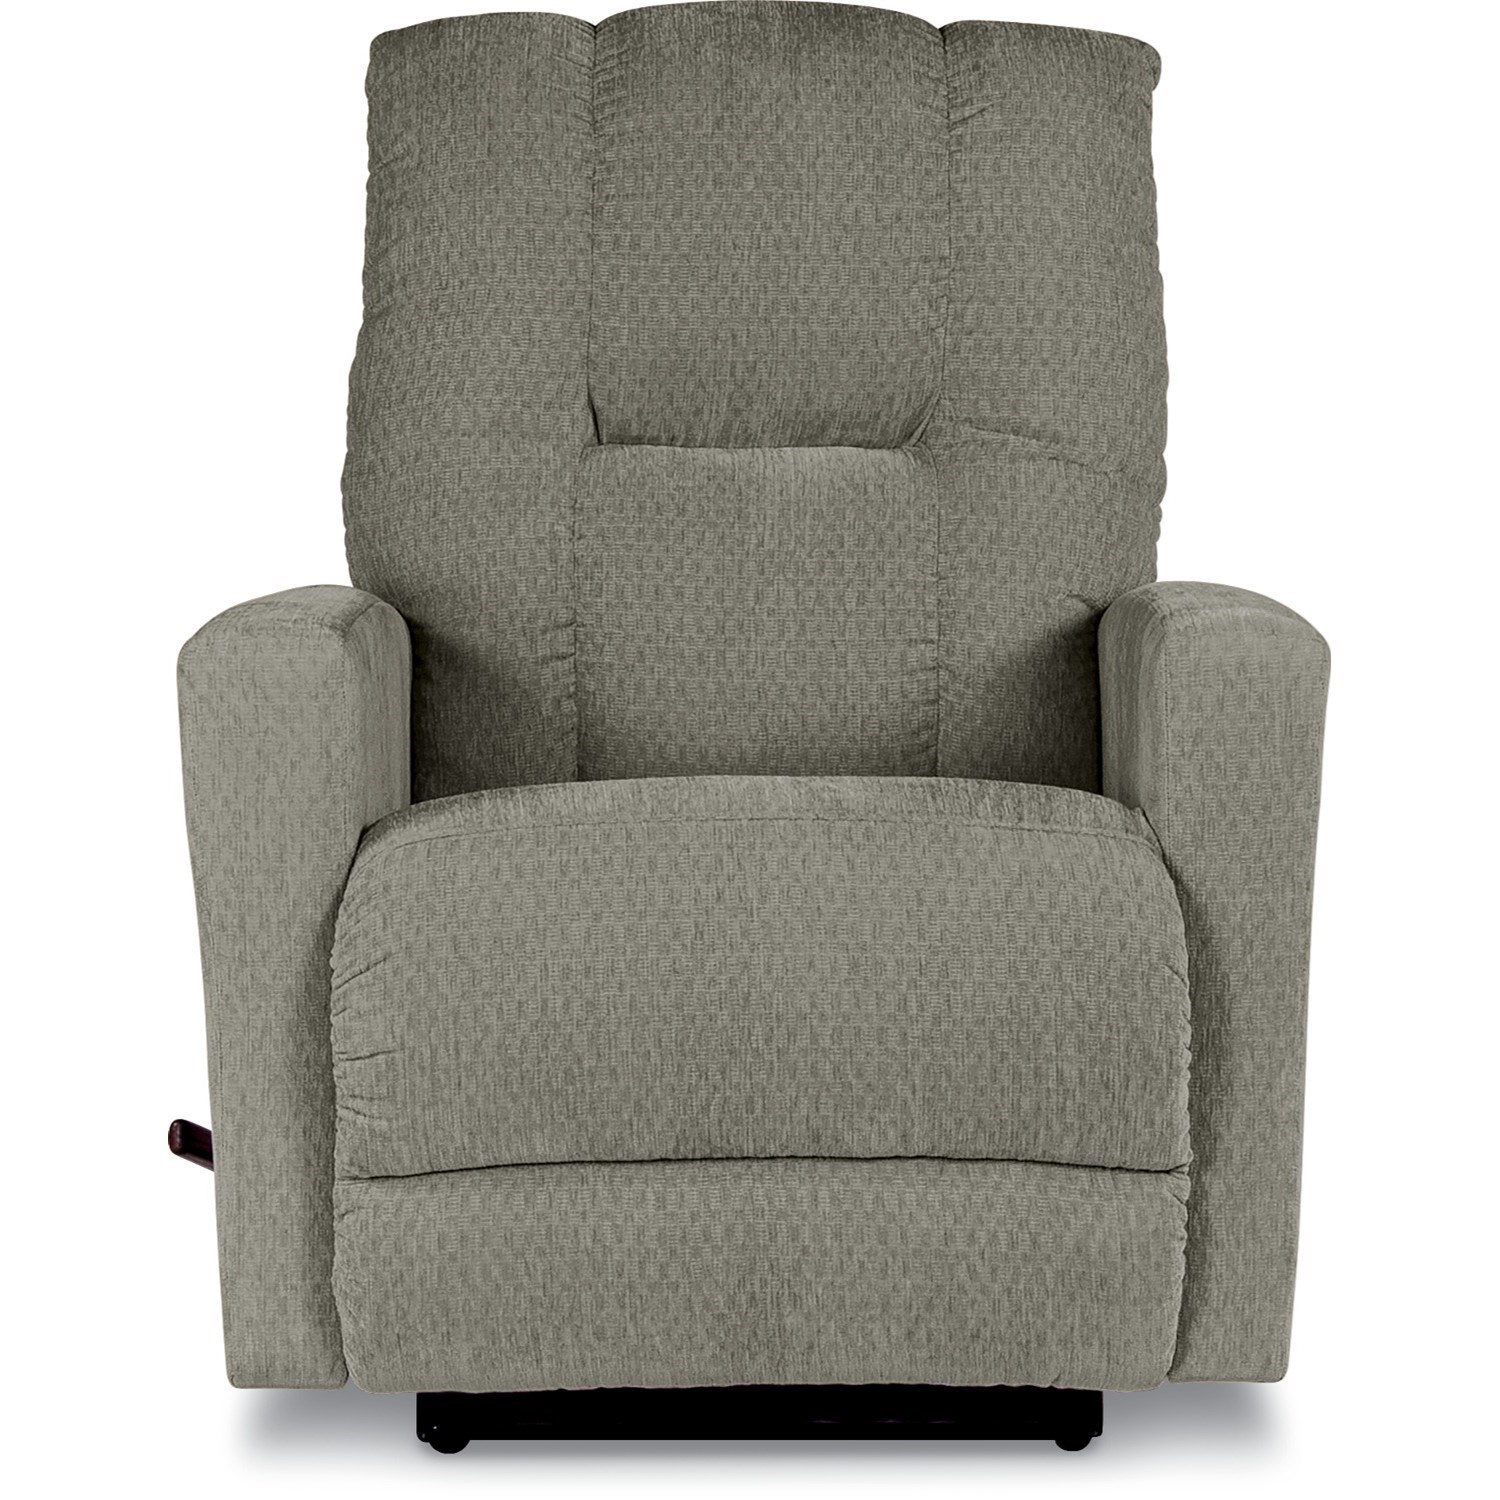 Recliners Casey Power Wall Recliner by La-Z-Boy at Factory Direct Furniture